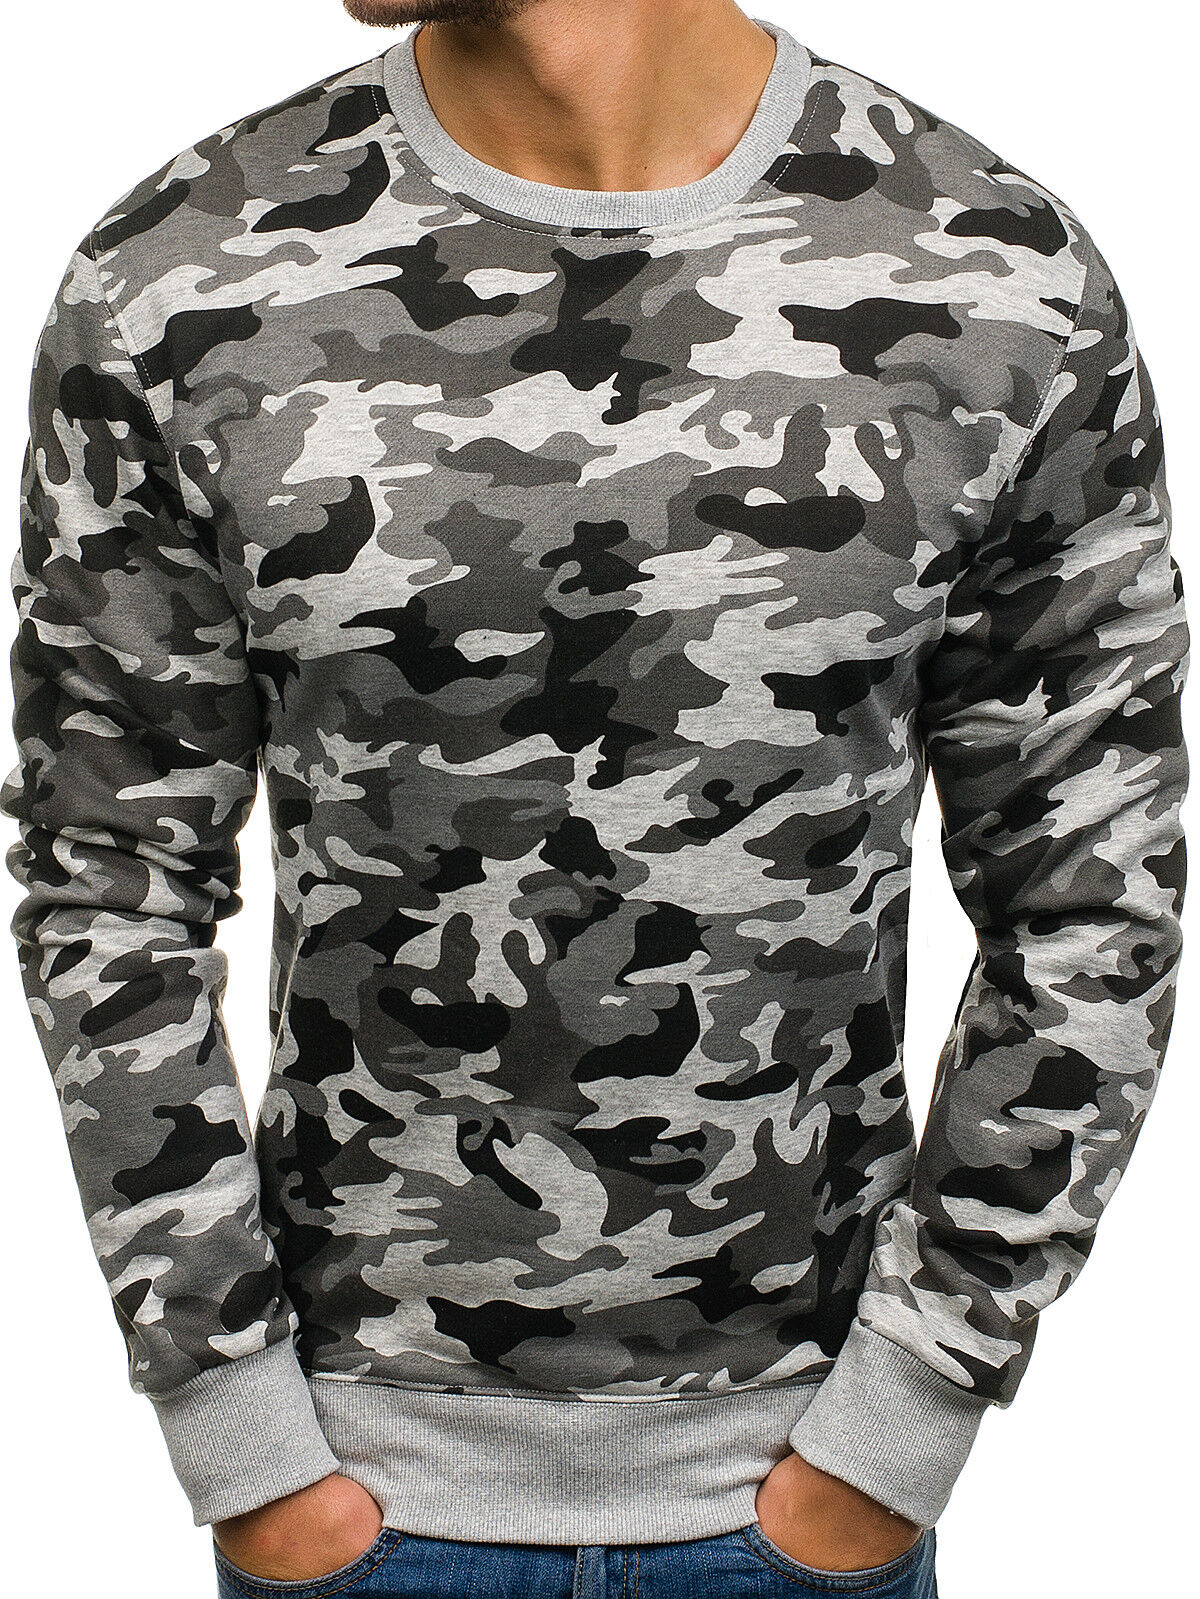 Hommes Camouflage Sweatshirt Pull Chemise Manches Longues Pull Camo BOLF 1a1 Motif